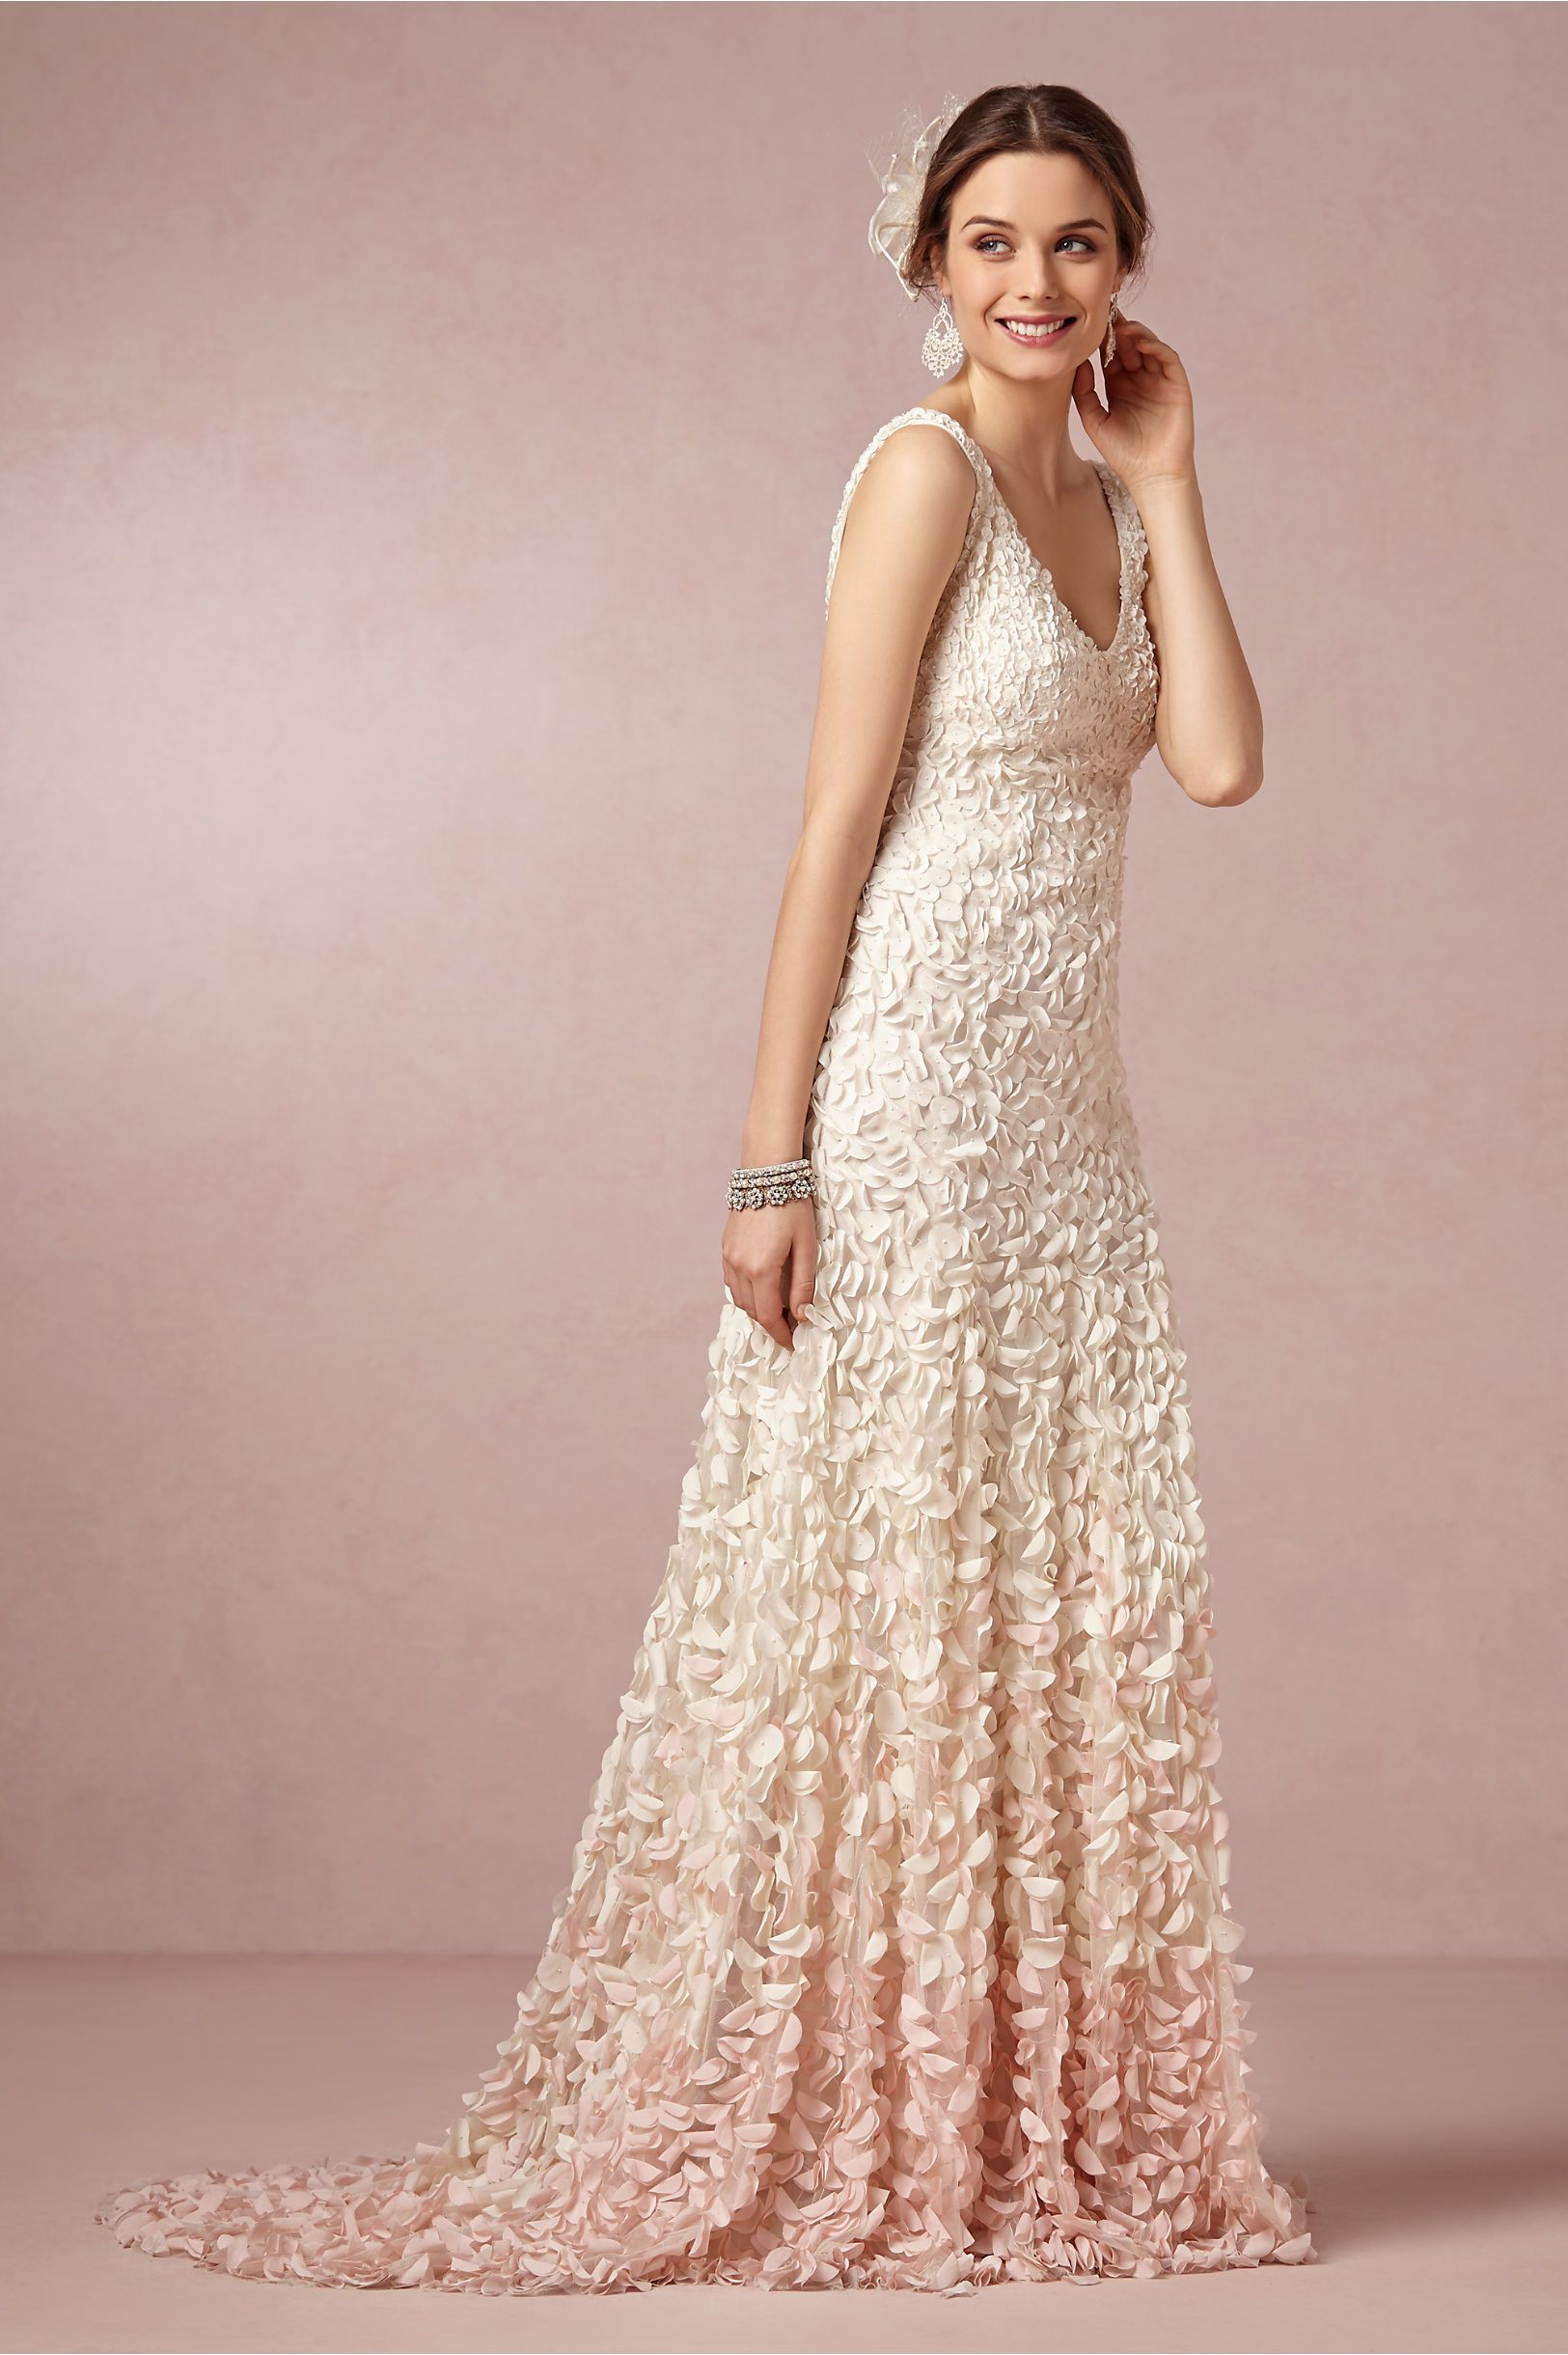 Beyond White: 15 Ombre Wedding Gowns | Gowns, Wedding dress and ...